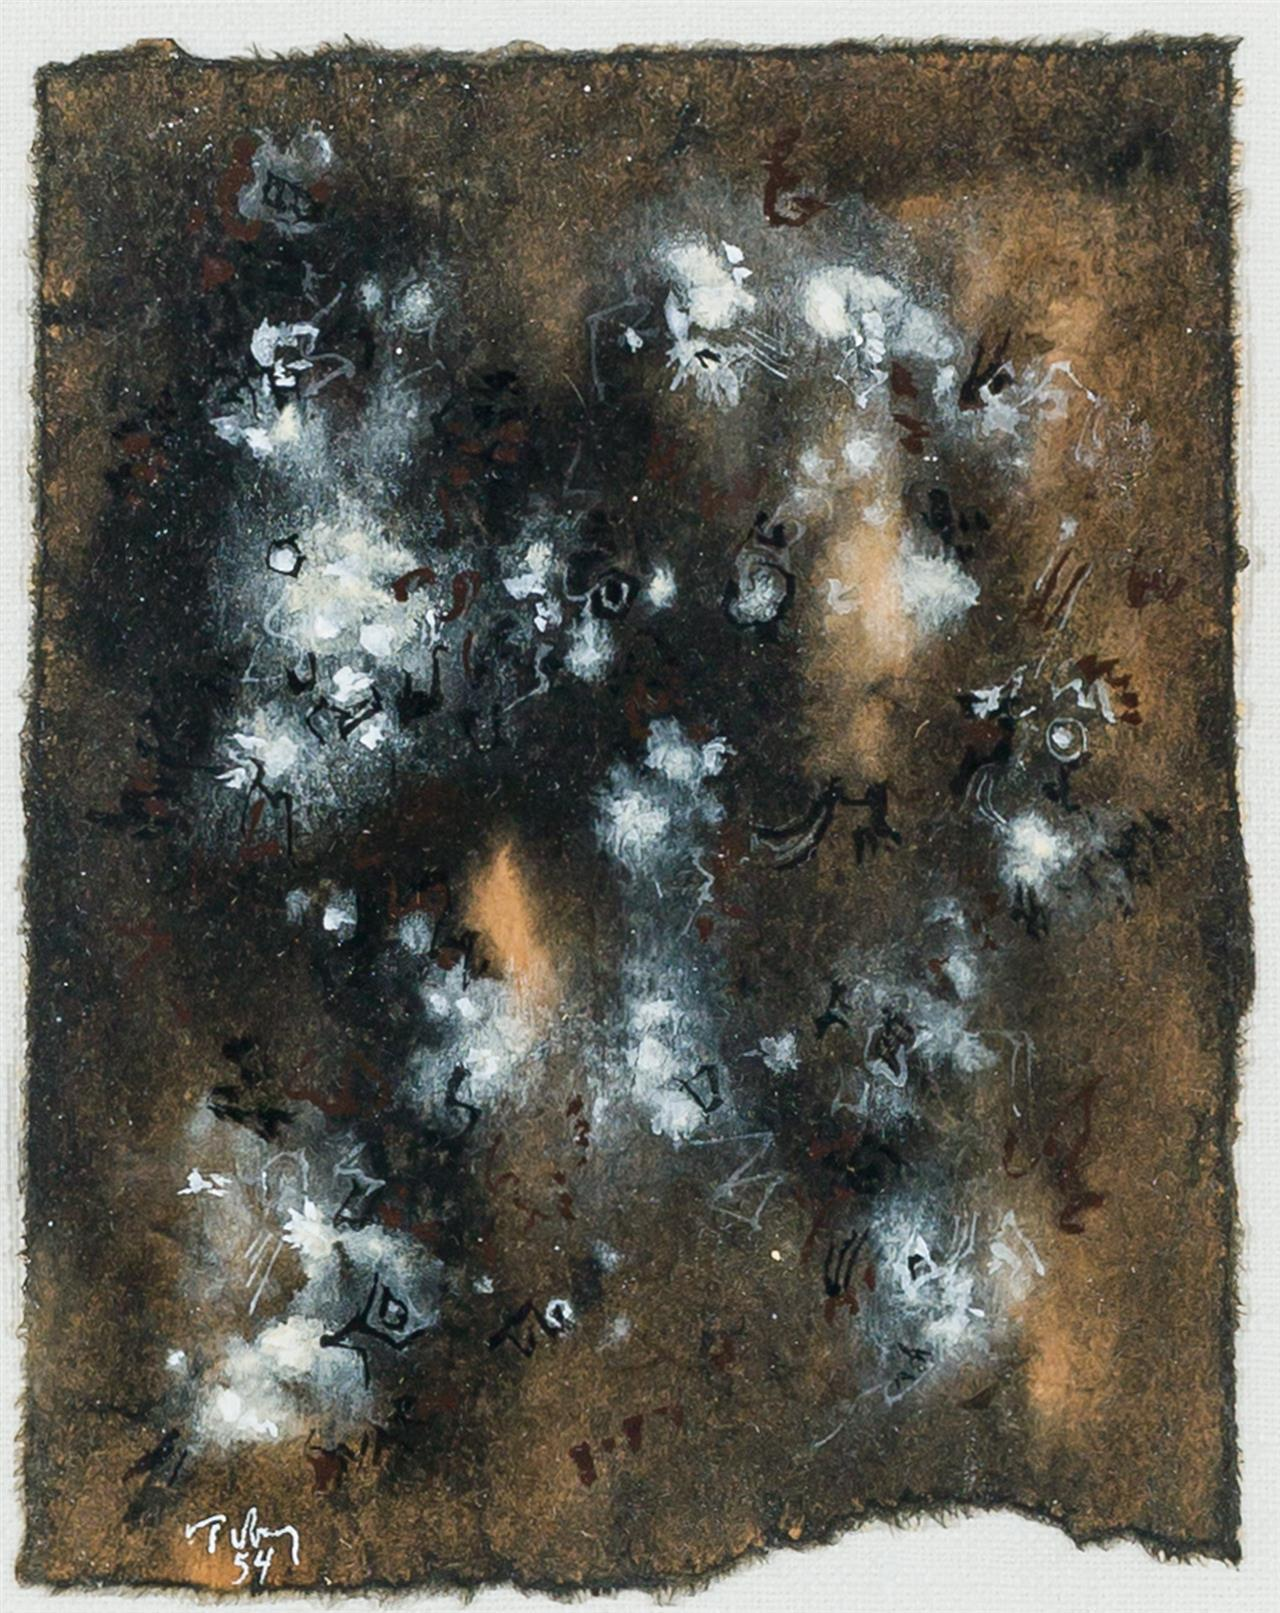 """MARK TOBEY, American (1890-1976), Untitled, tempera on paper, signed and dated lower left """"Tobey / 54"""", 6 1/8 x 4 7/8 inches"""